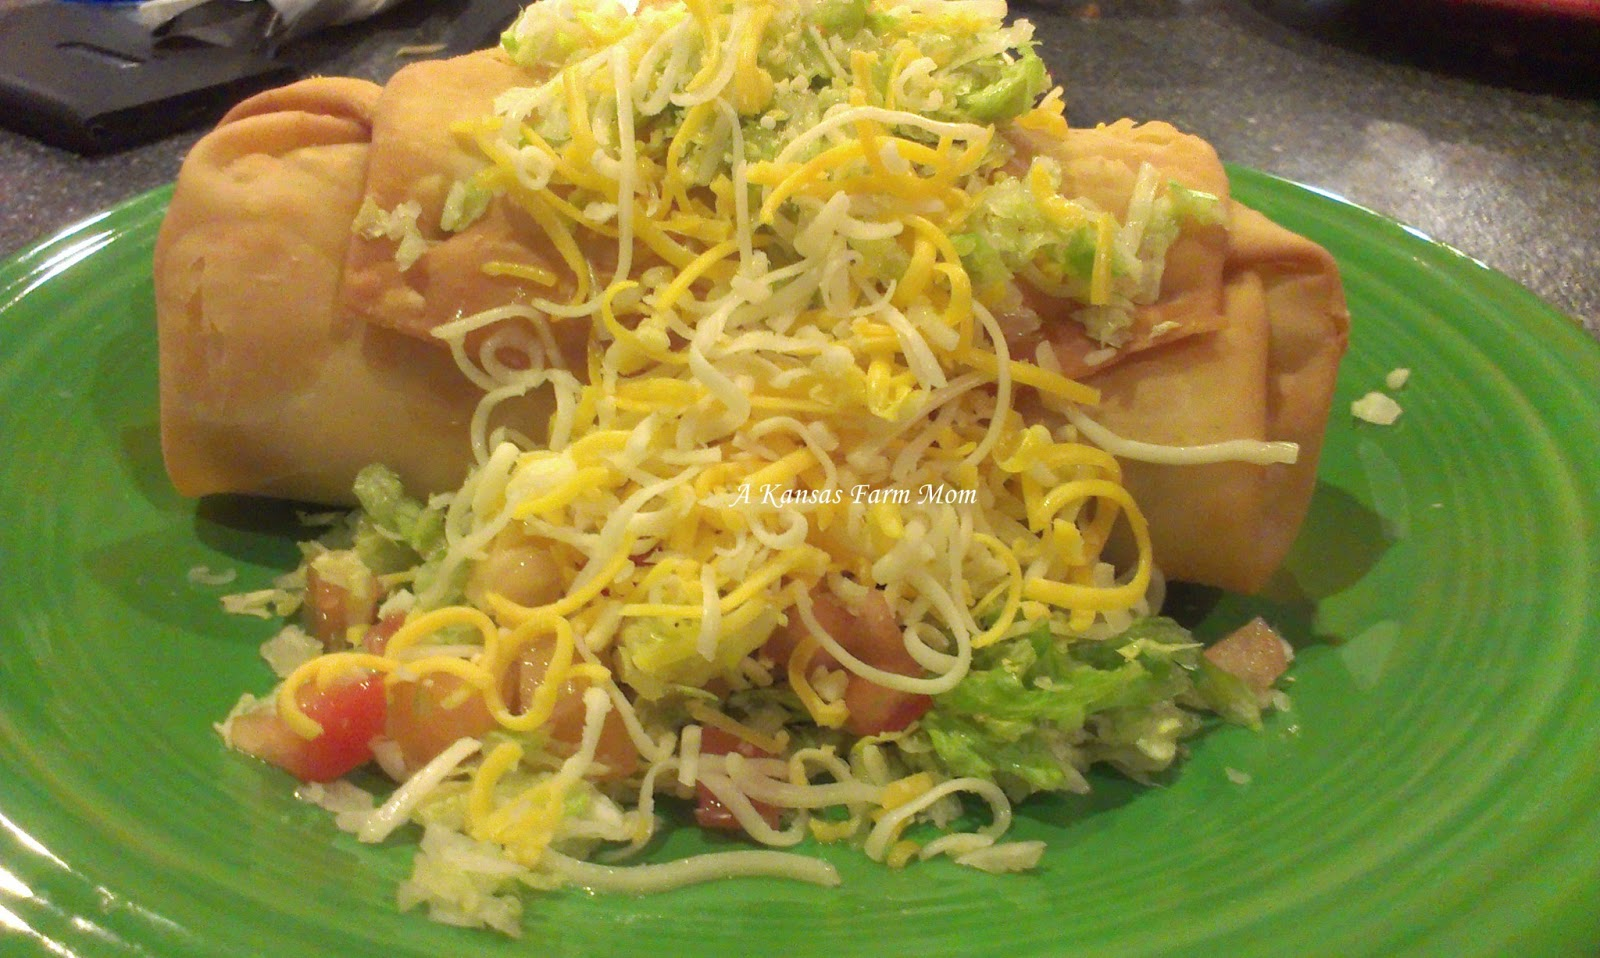 ... personal favorite item is the Shredded Beef and Cheese Chimichanga